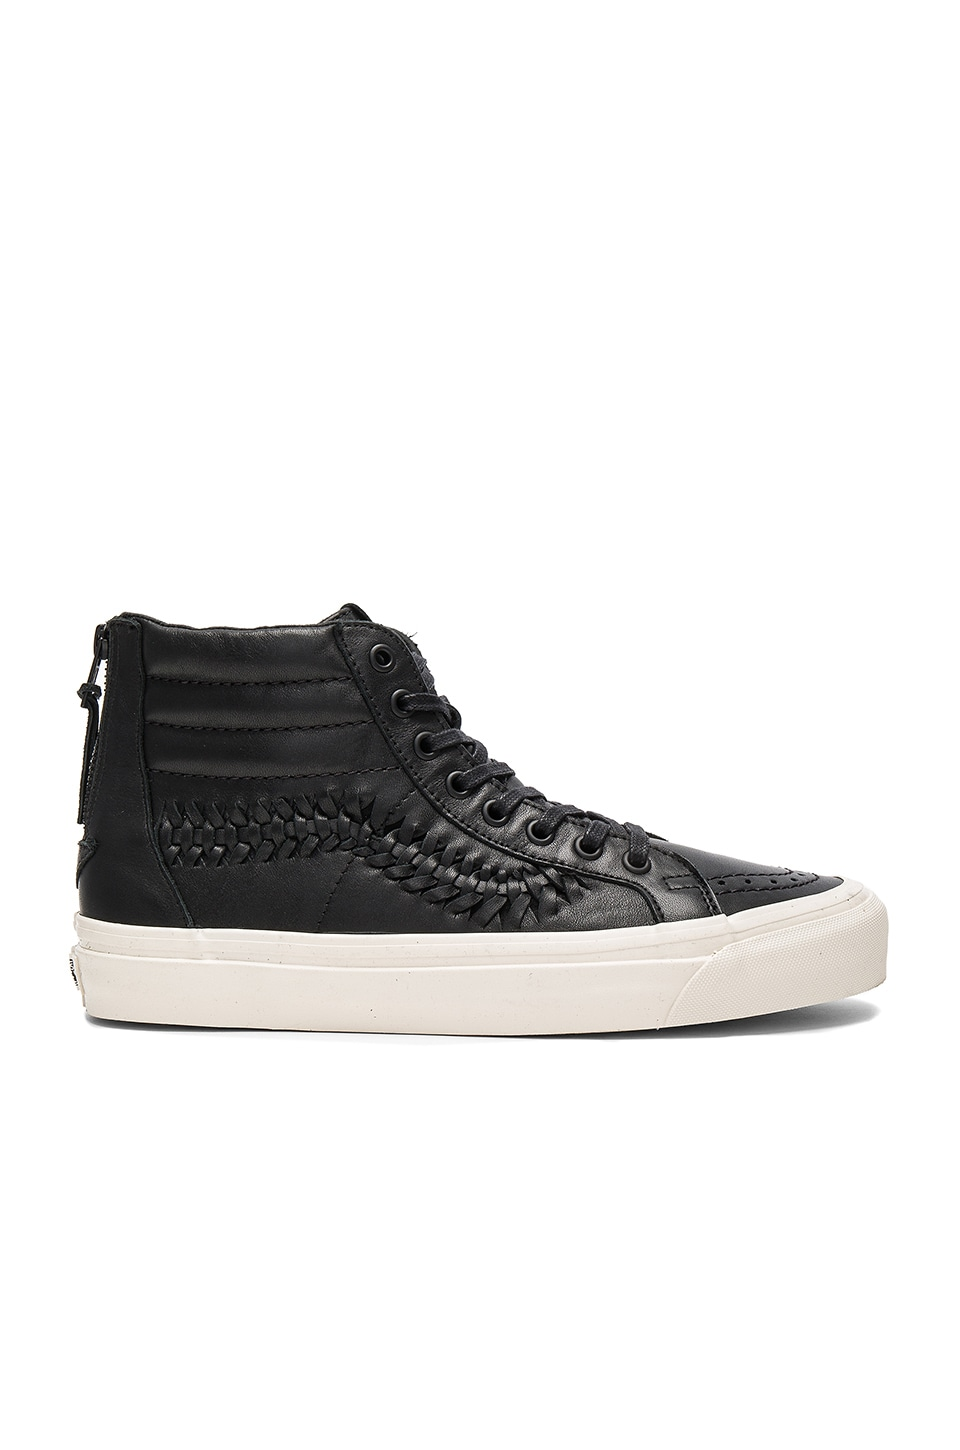 Photo of SK8 Hi Zip Weave DX by Vans men clothes